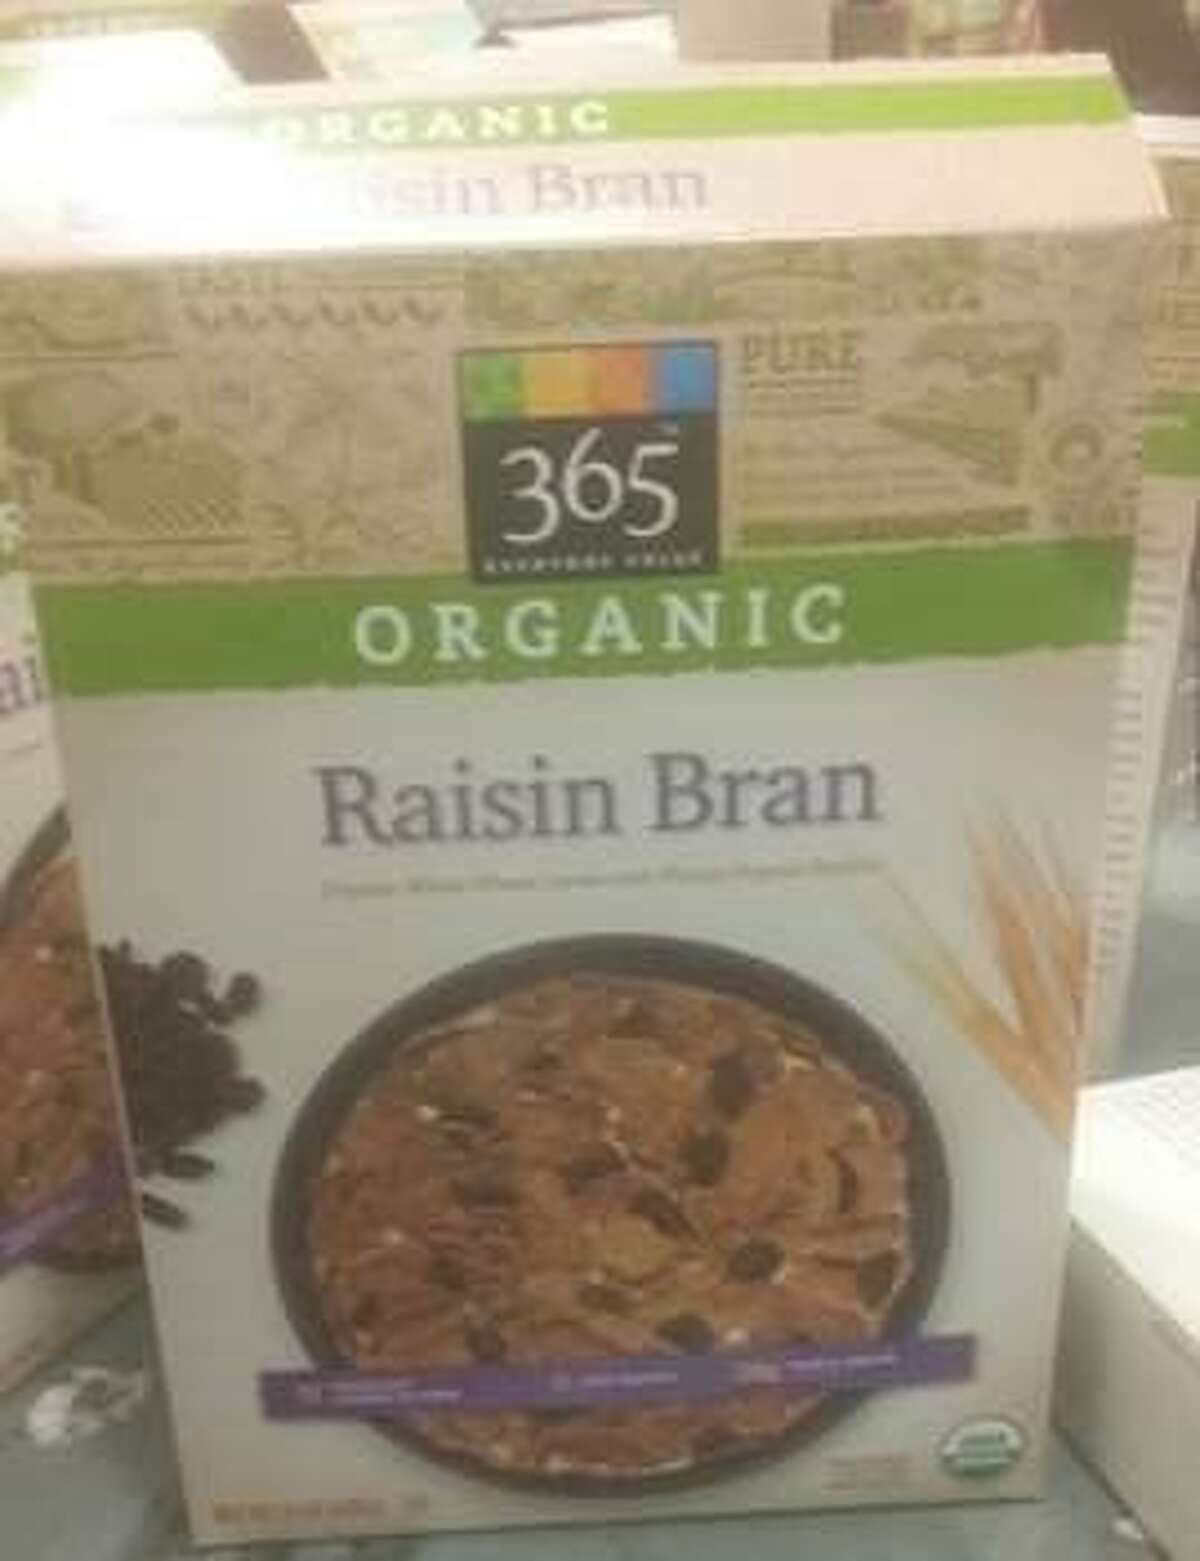 Whole Foods Market stores are recalling 365 Everyday Value Organic Raisin Bran because the product contains undeclared peanuts that were not listed on the product label. Photo courtesy of the U.S. Food and Drug Administration.